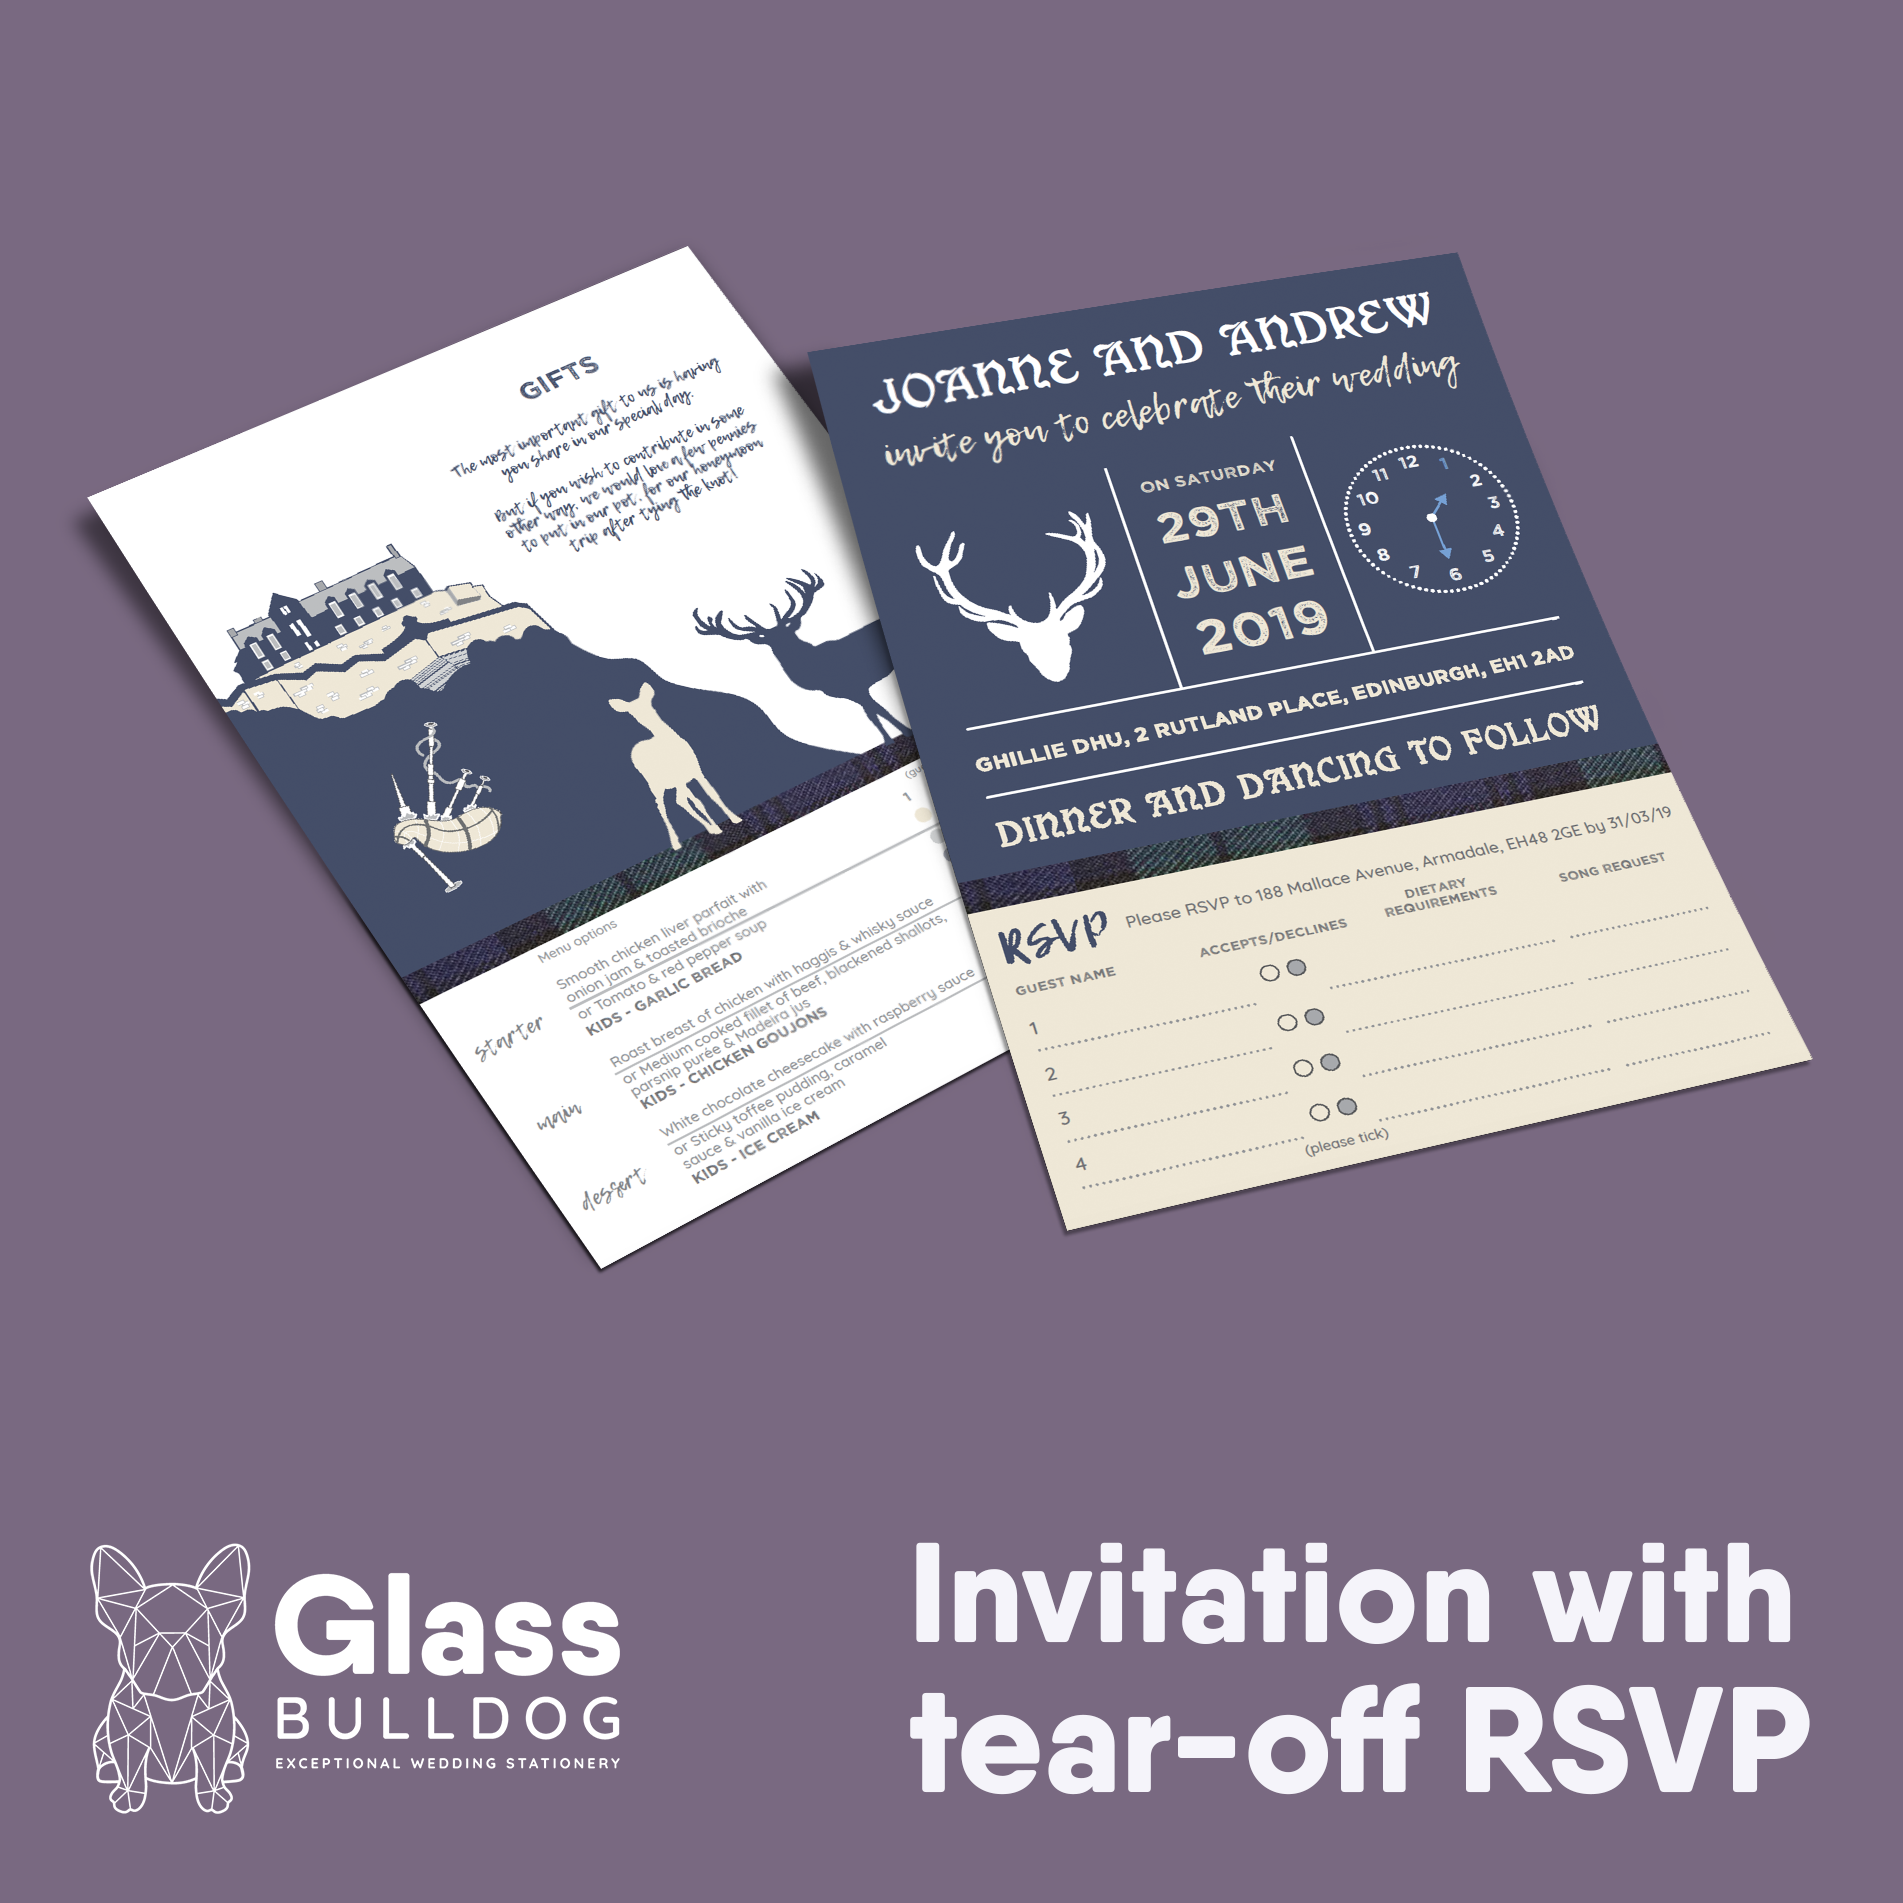 Edinburgh wedding invitation